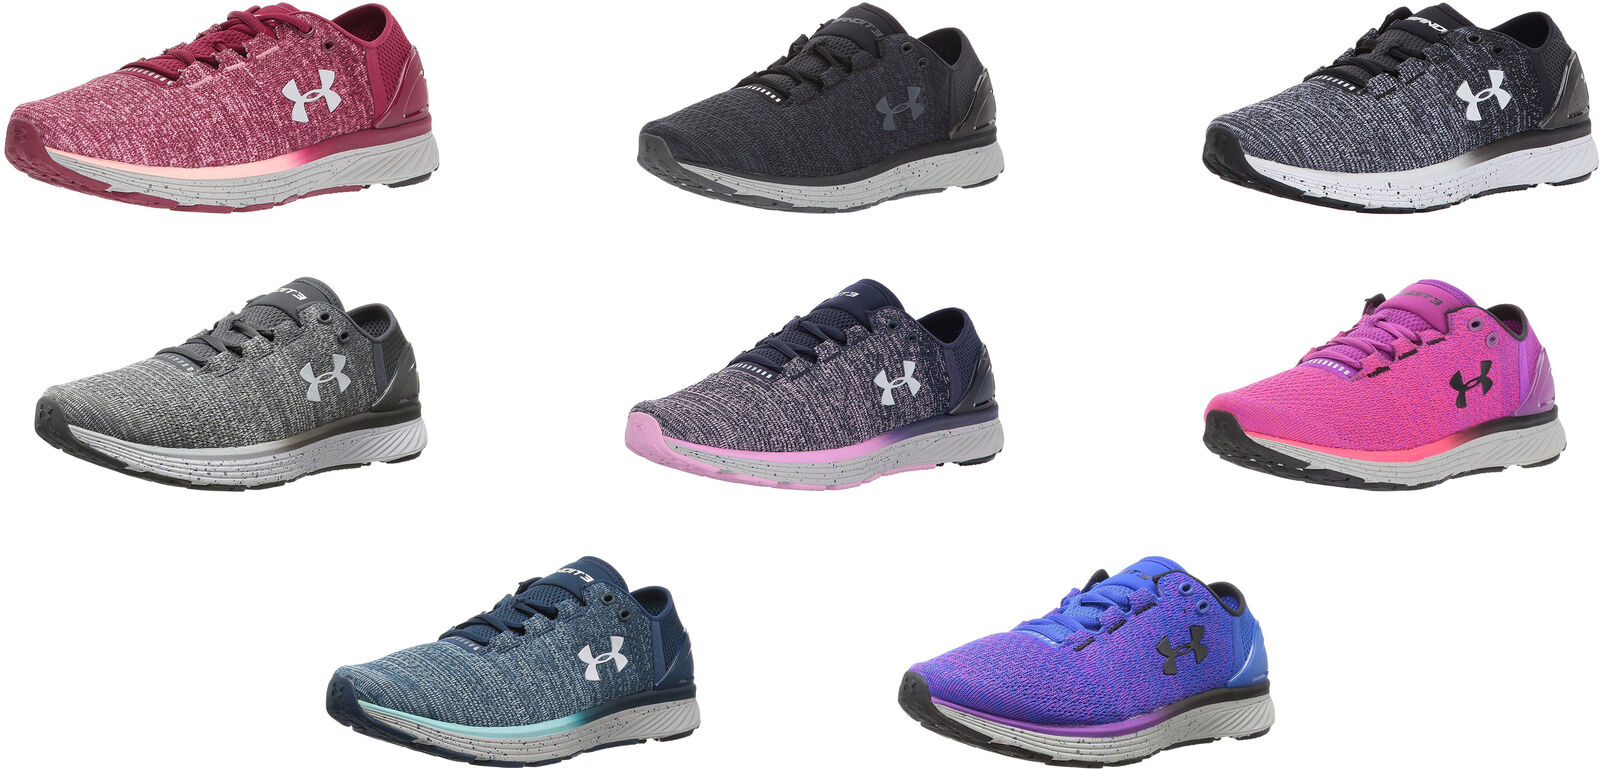 the latest 278f7 76247 Under Armour Women s Charged Bandit 3 Shoes, 8 Colors